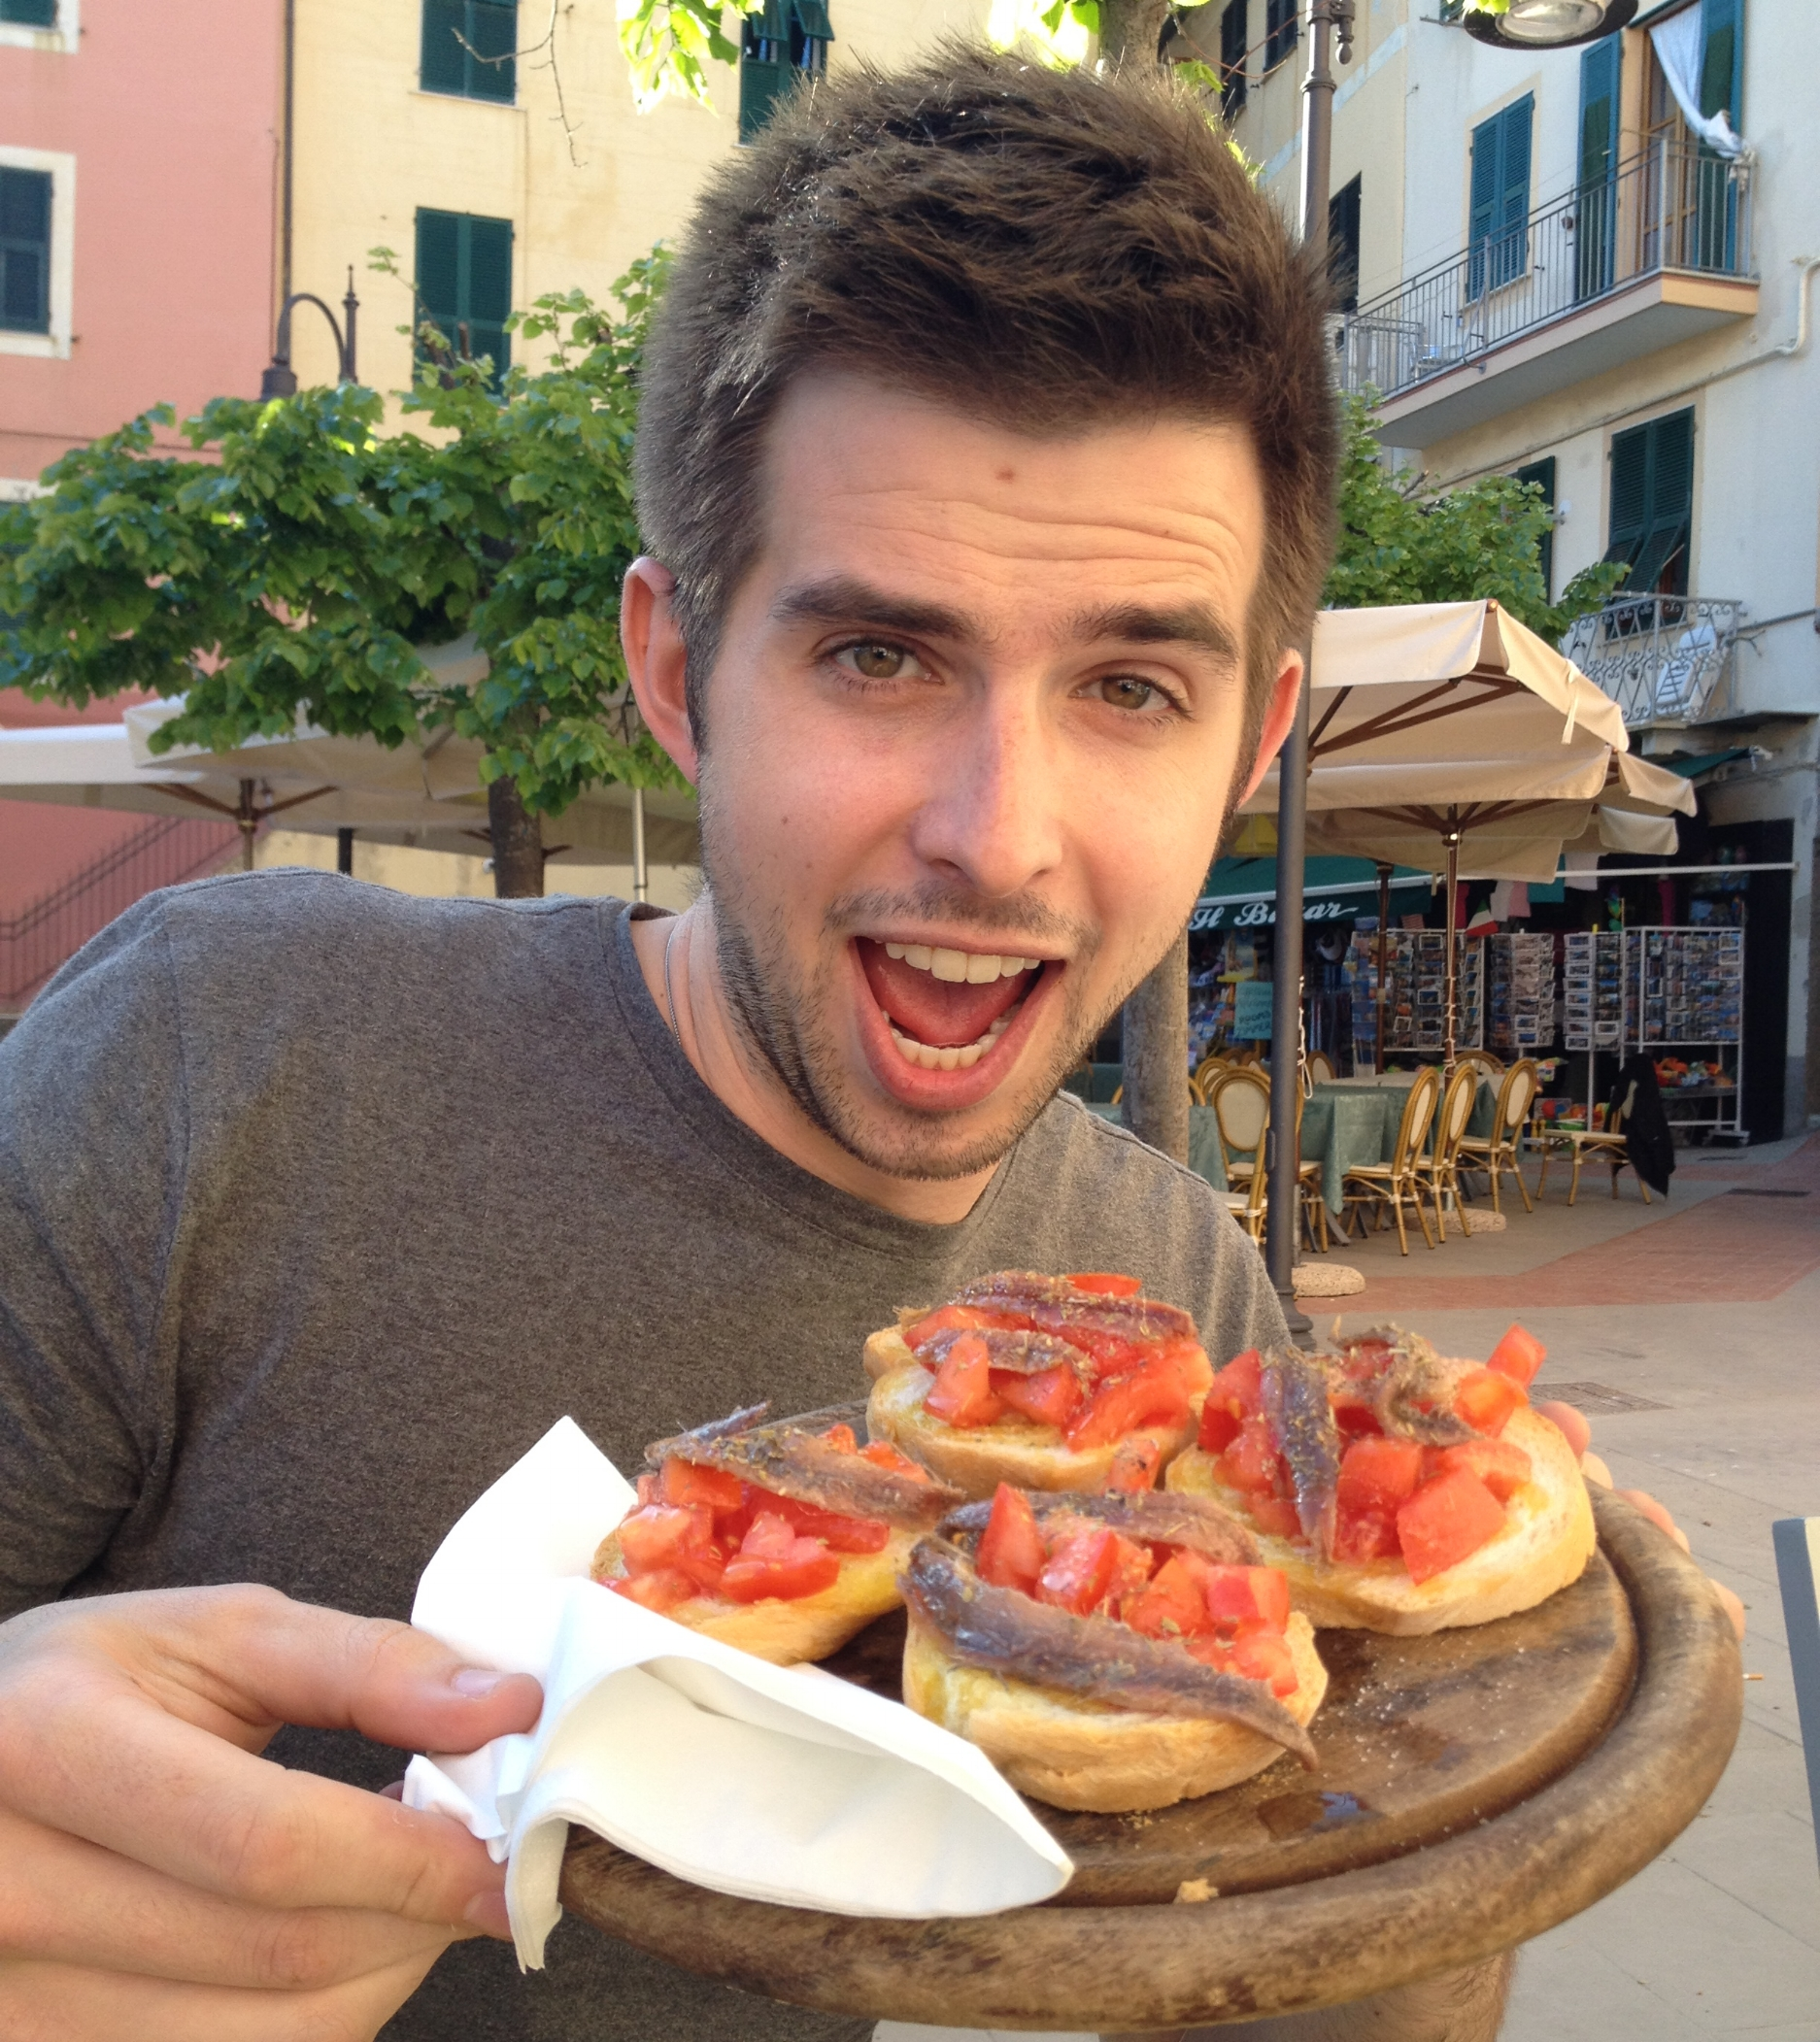 Trying out the local tapas (featuring anchovies...)